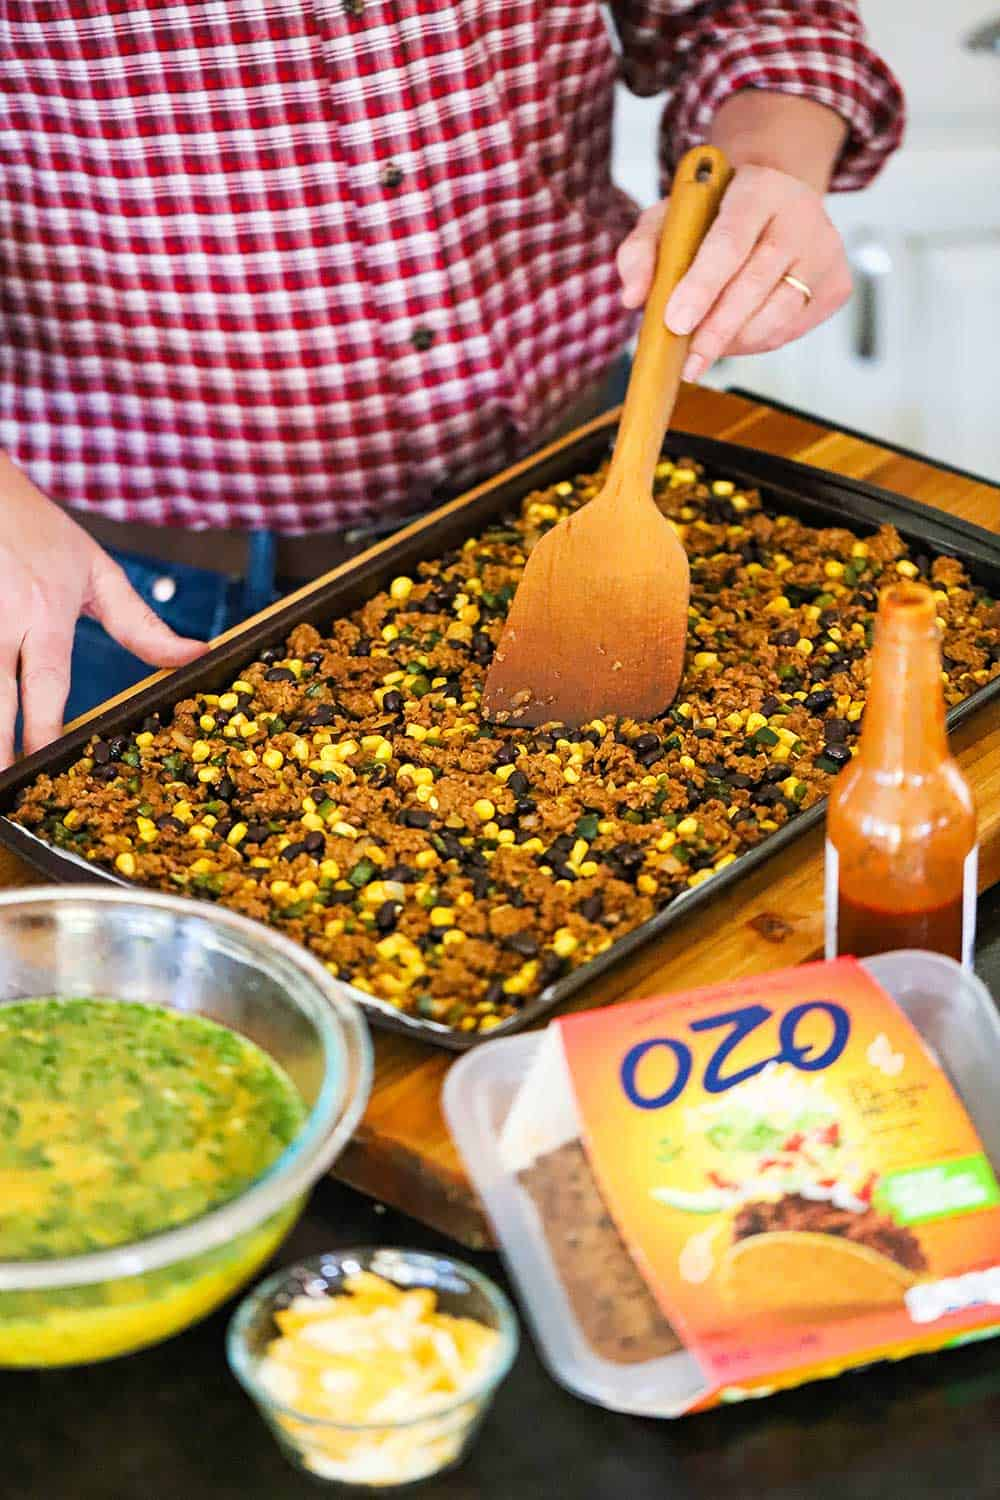 A person using a wooden spatula to spread a plant-based Mexican mixture over the base of a rimmed baking sheet pan.